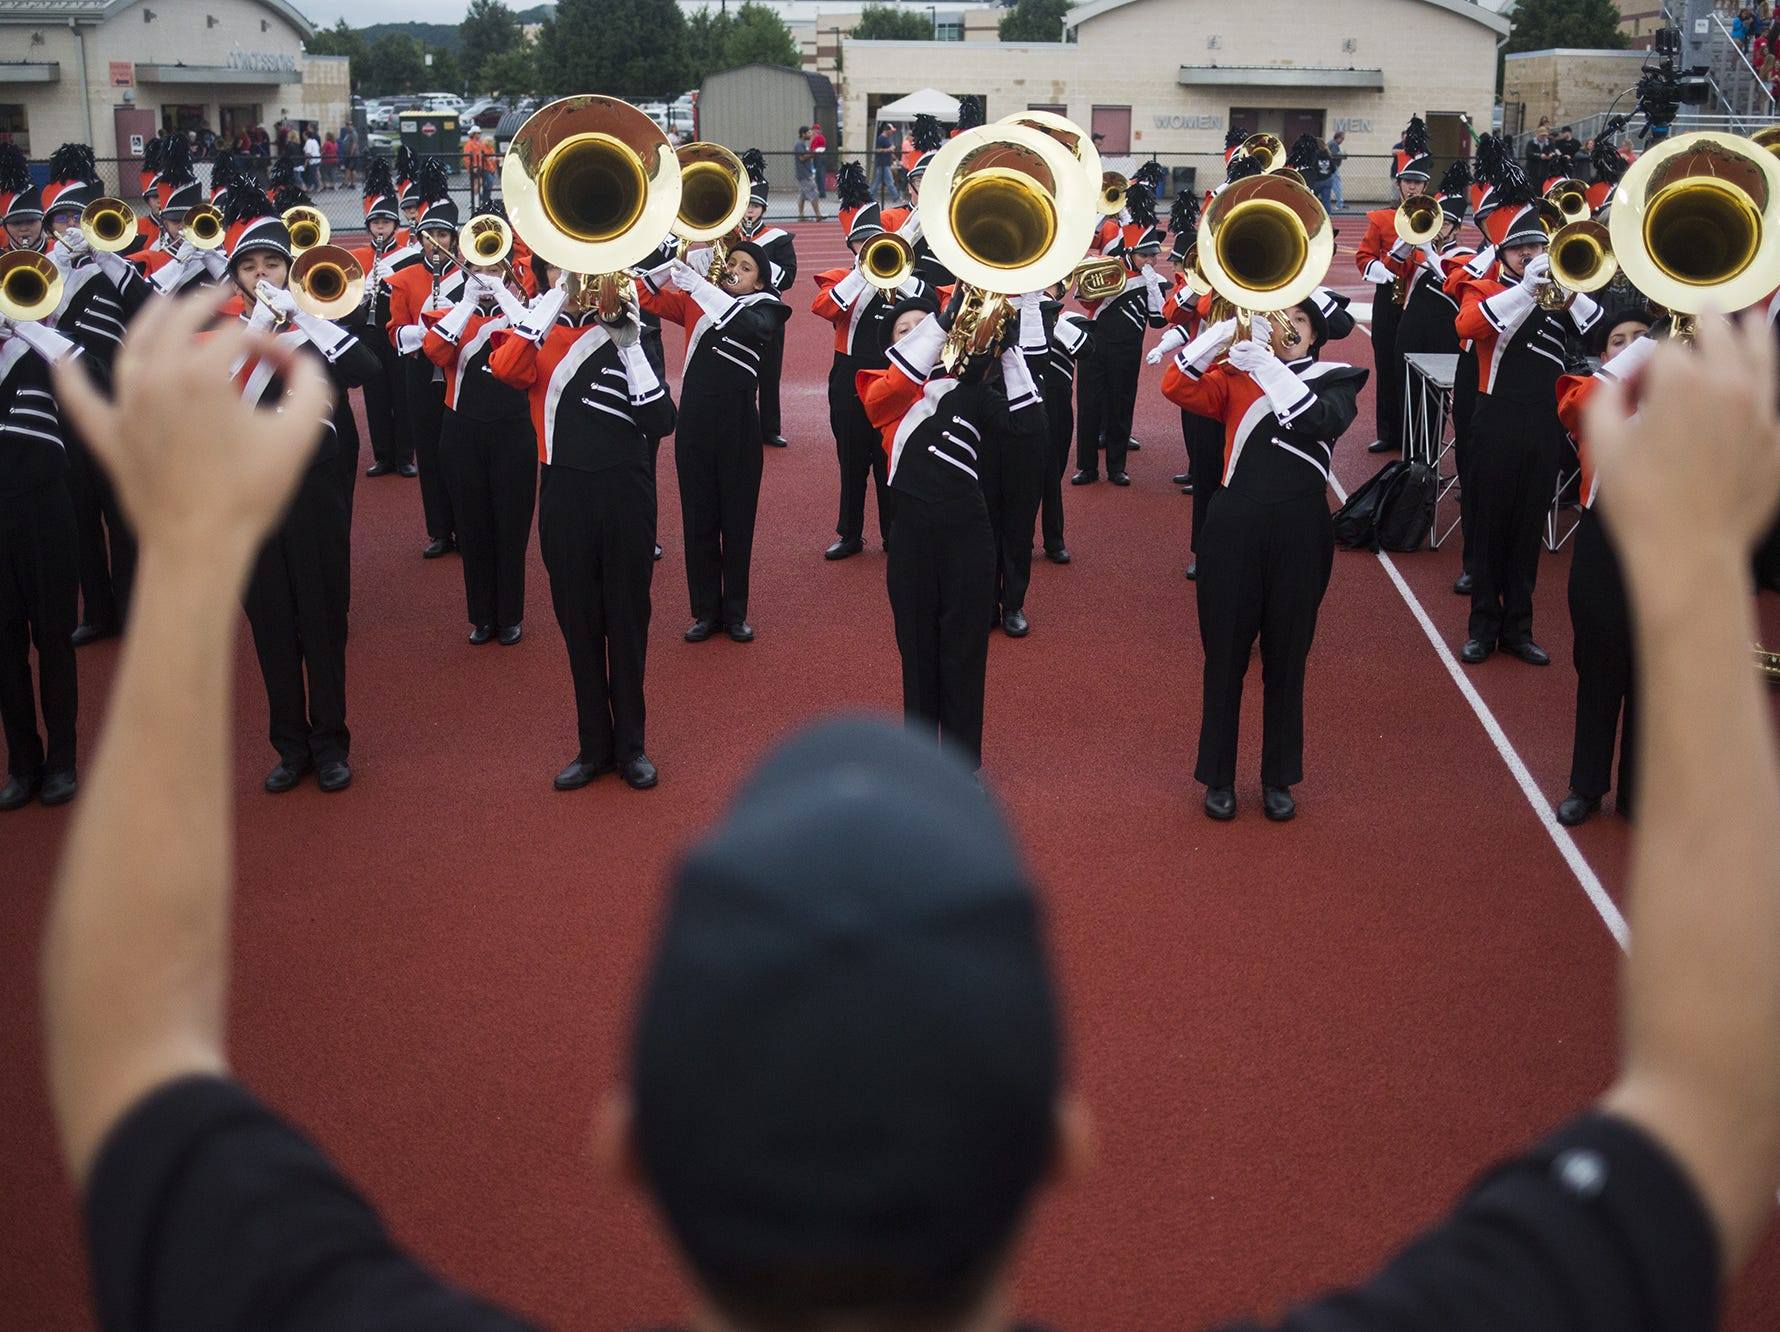 The Central York High School marching band prepares before their performance before the game. Central York defeats Cumberland Valley 31-14 in football at Central York High School in Springettsbury Township, Friday, August 31, 2018.